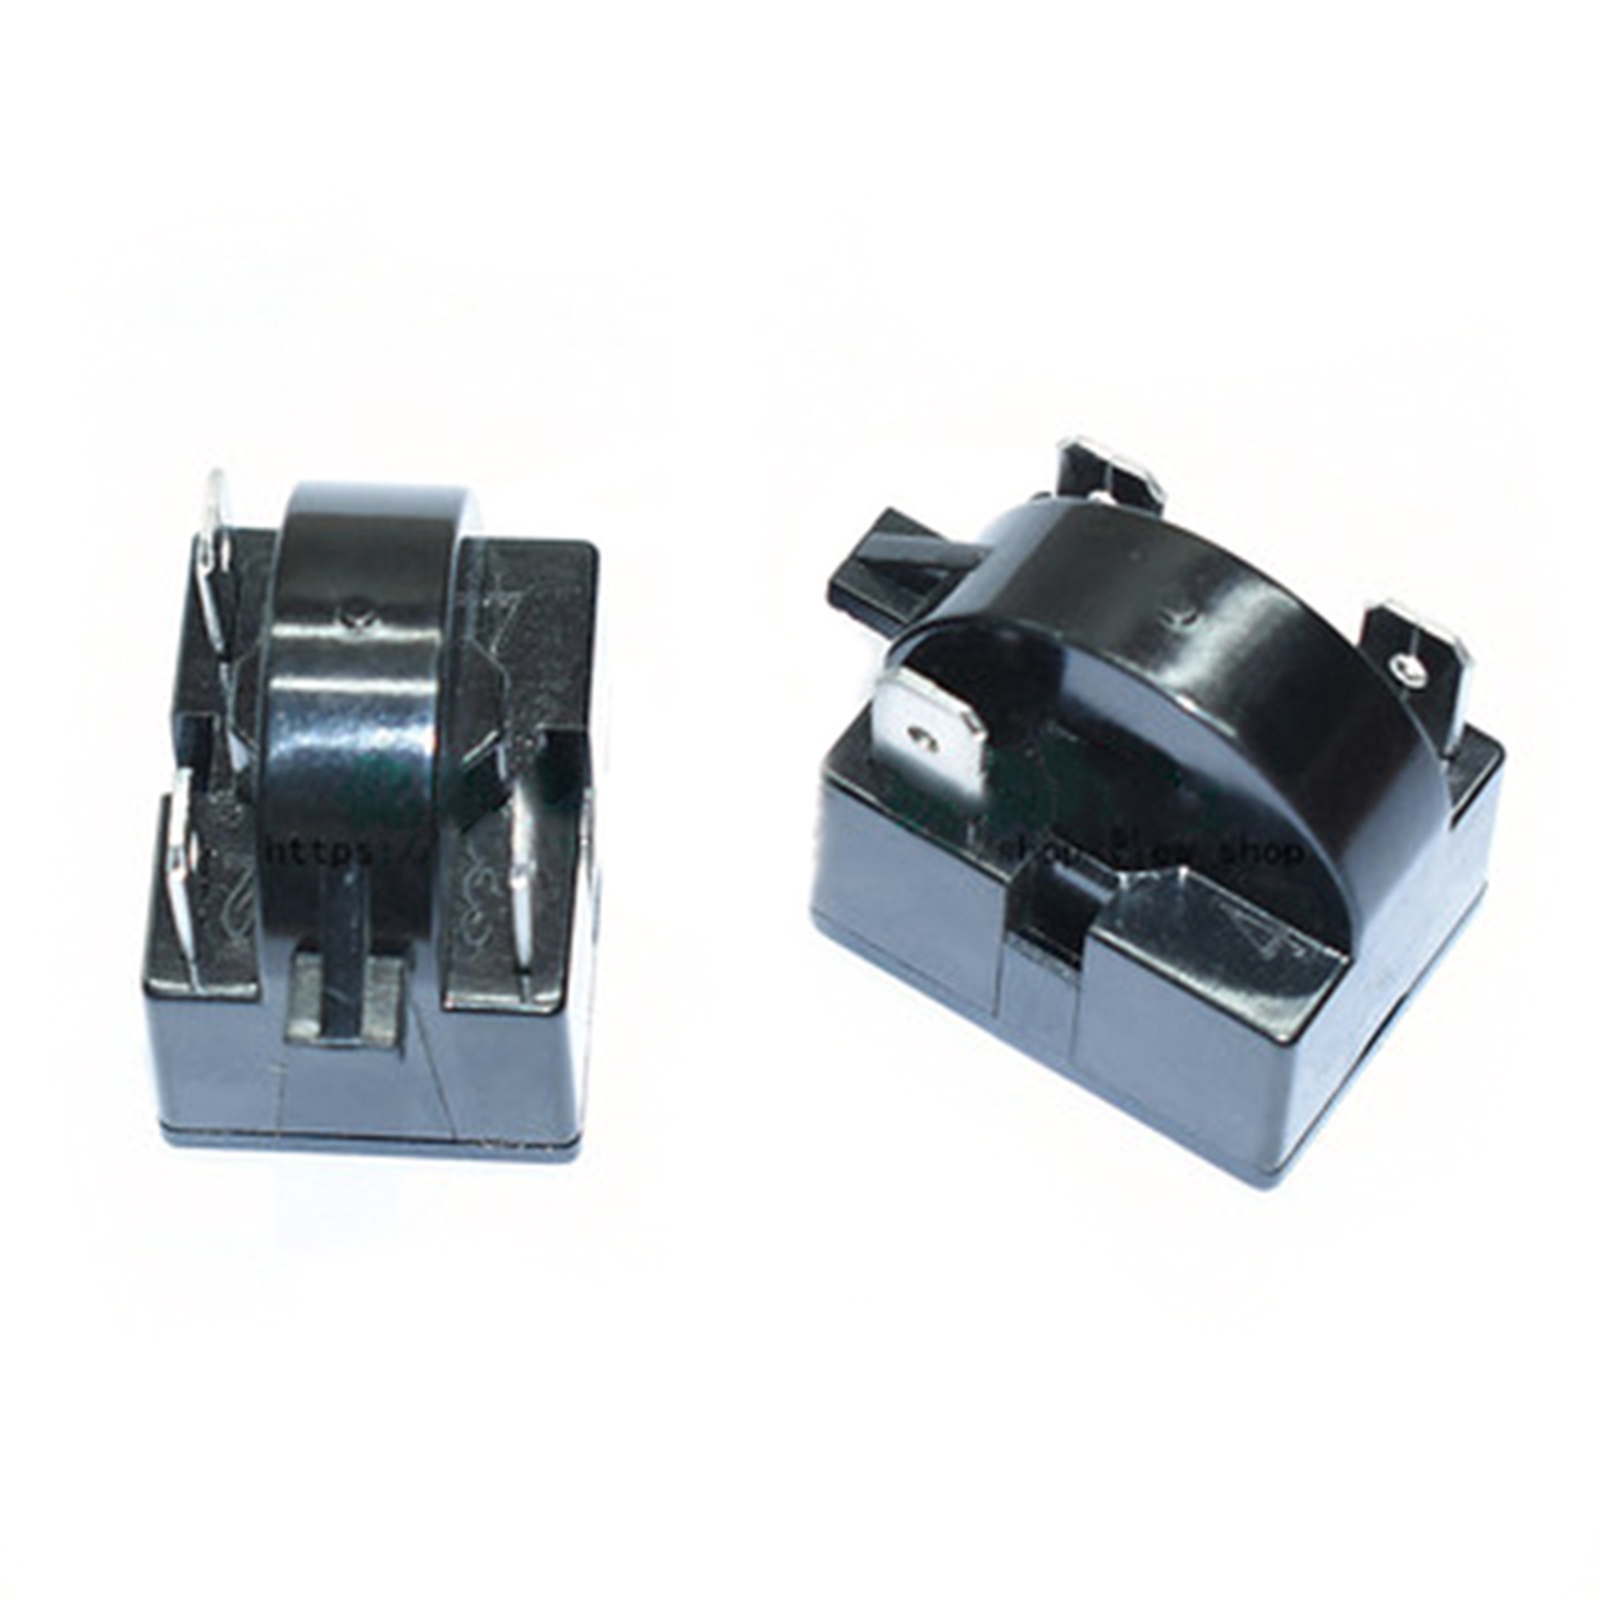 1PC Refrigerator Compressor Relay Starter For QP2-15C Universal Type Three Inserts 15 Ohm Black